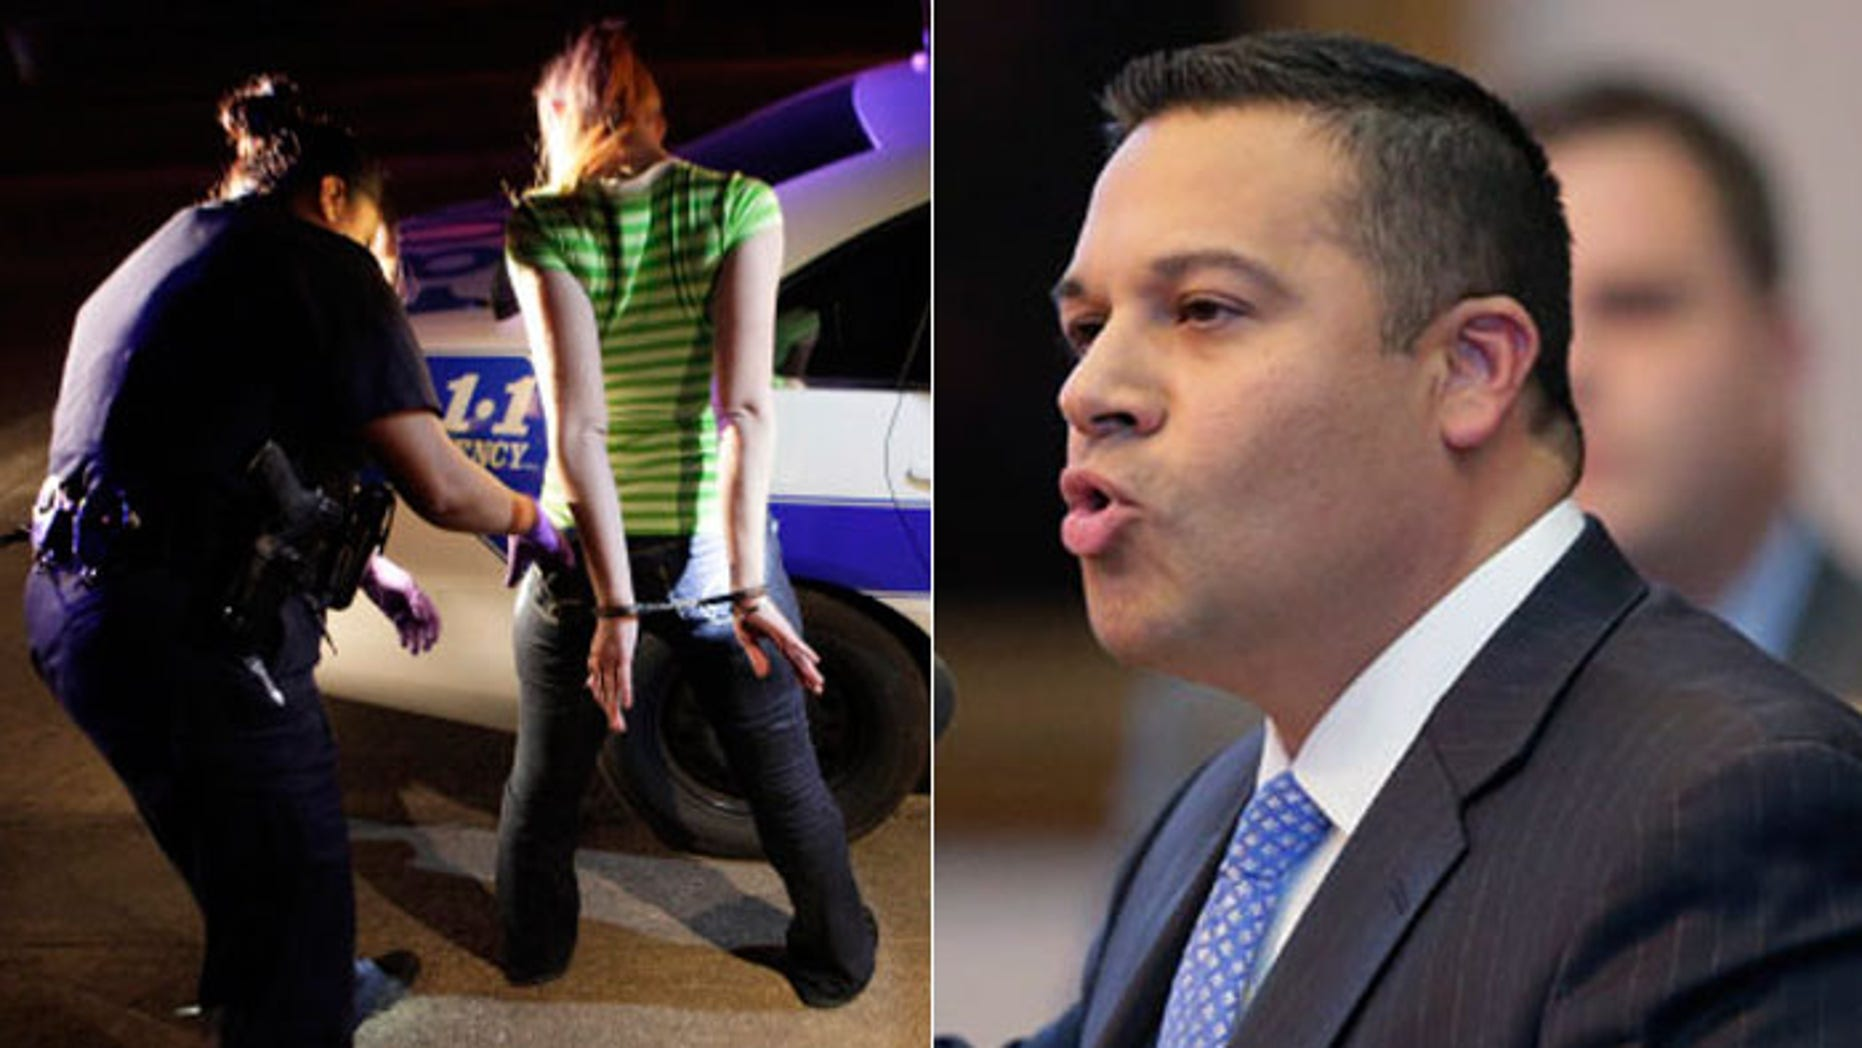 """Texas state lawmaker Jason Villalba, (r.), wants to establish a """"buffer zone"""" to keep people away from police as they do their work, as seen above, in photo of Dallas police arresting a prostitution suspect. (AP)"""